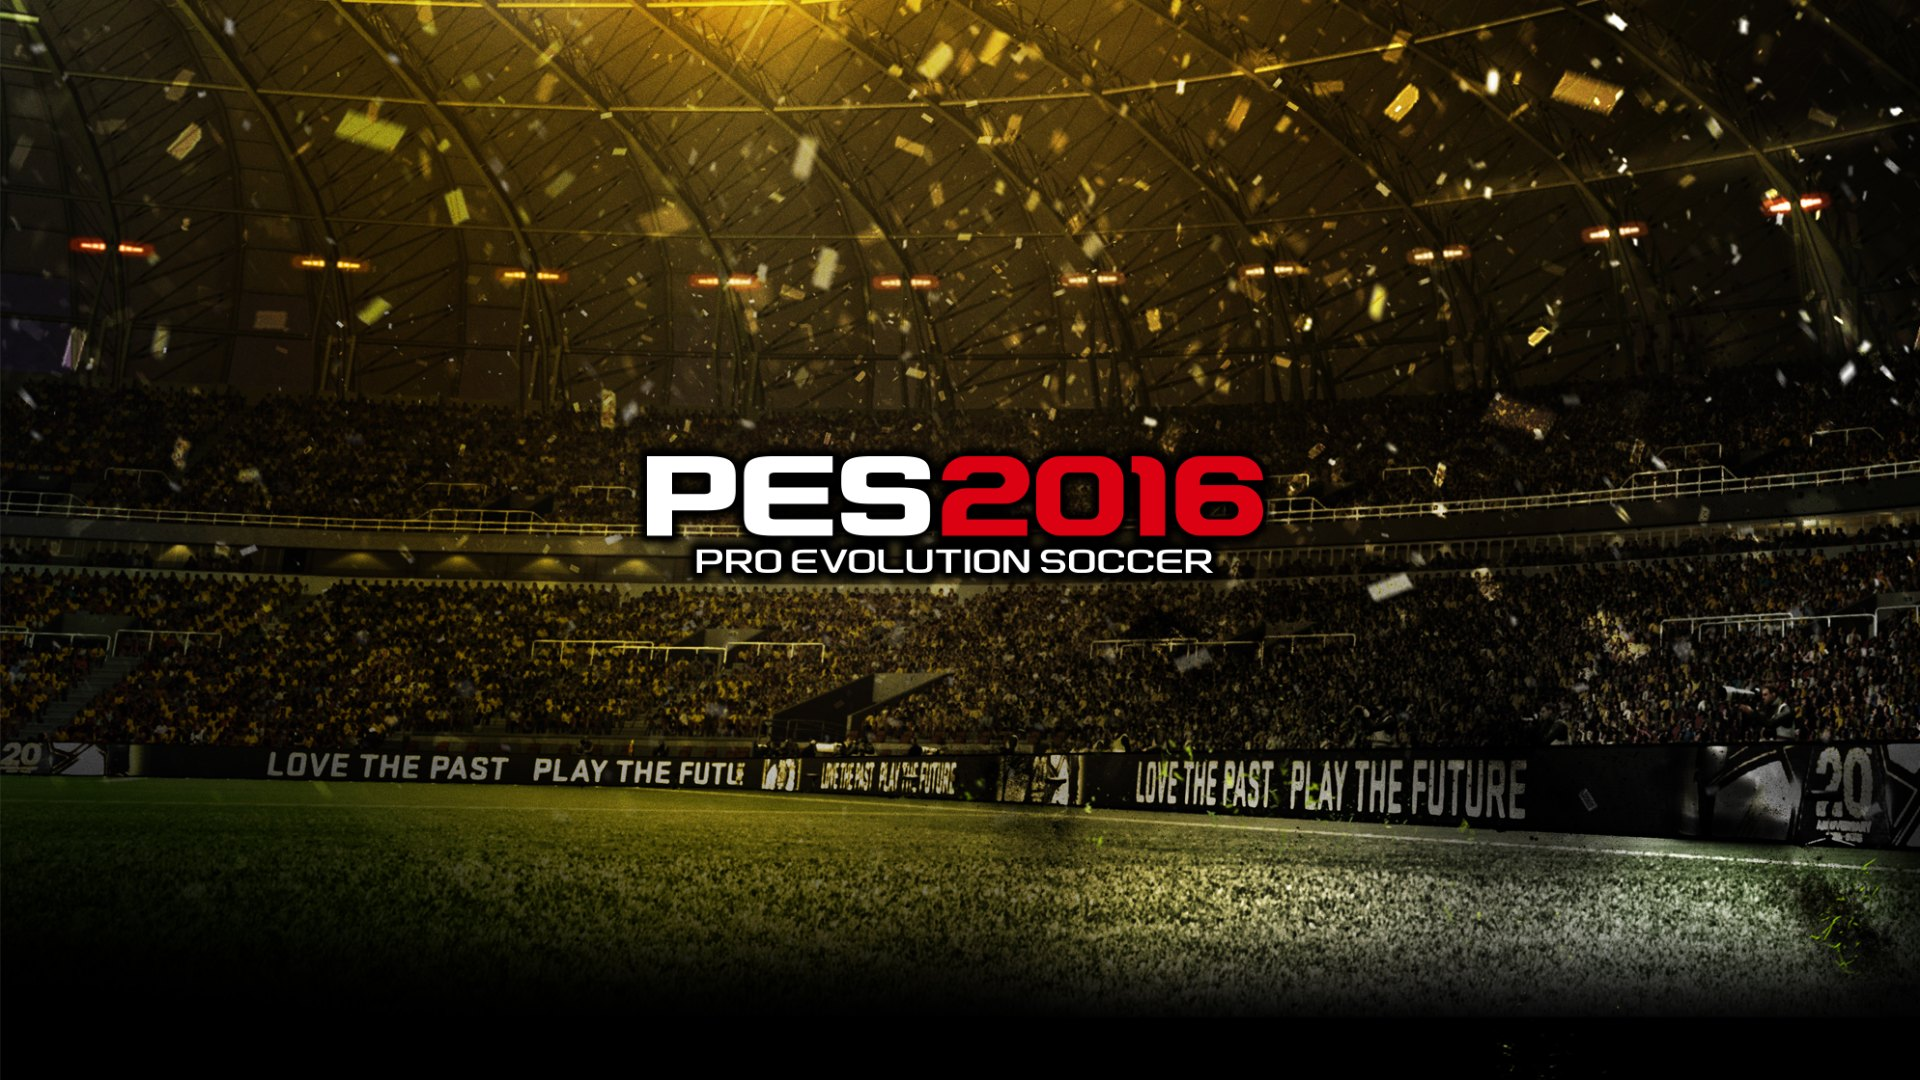 Pro Evolution Soccer 2016 Wallpapers Hd Download